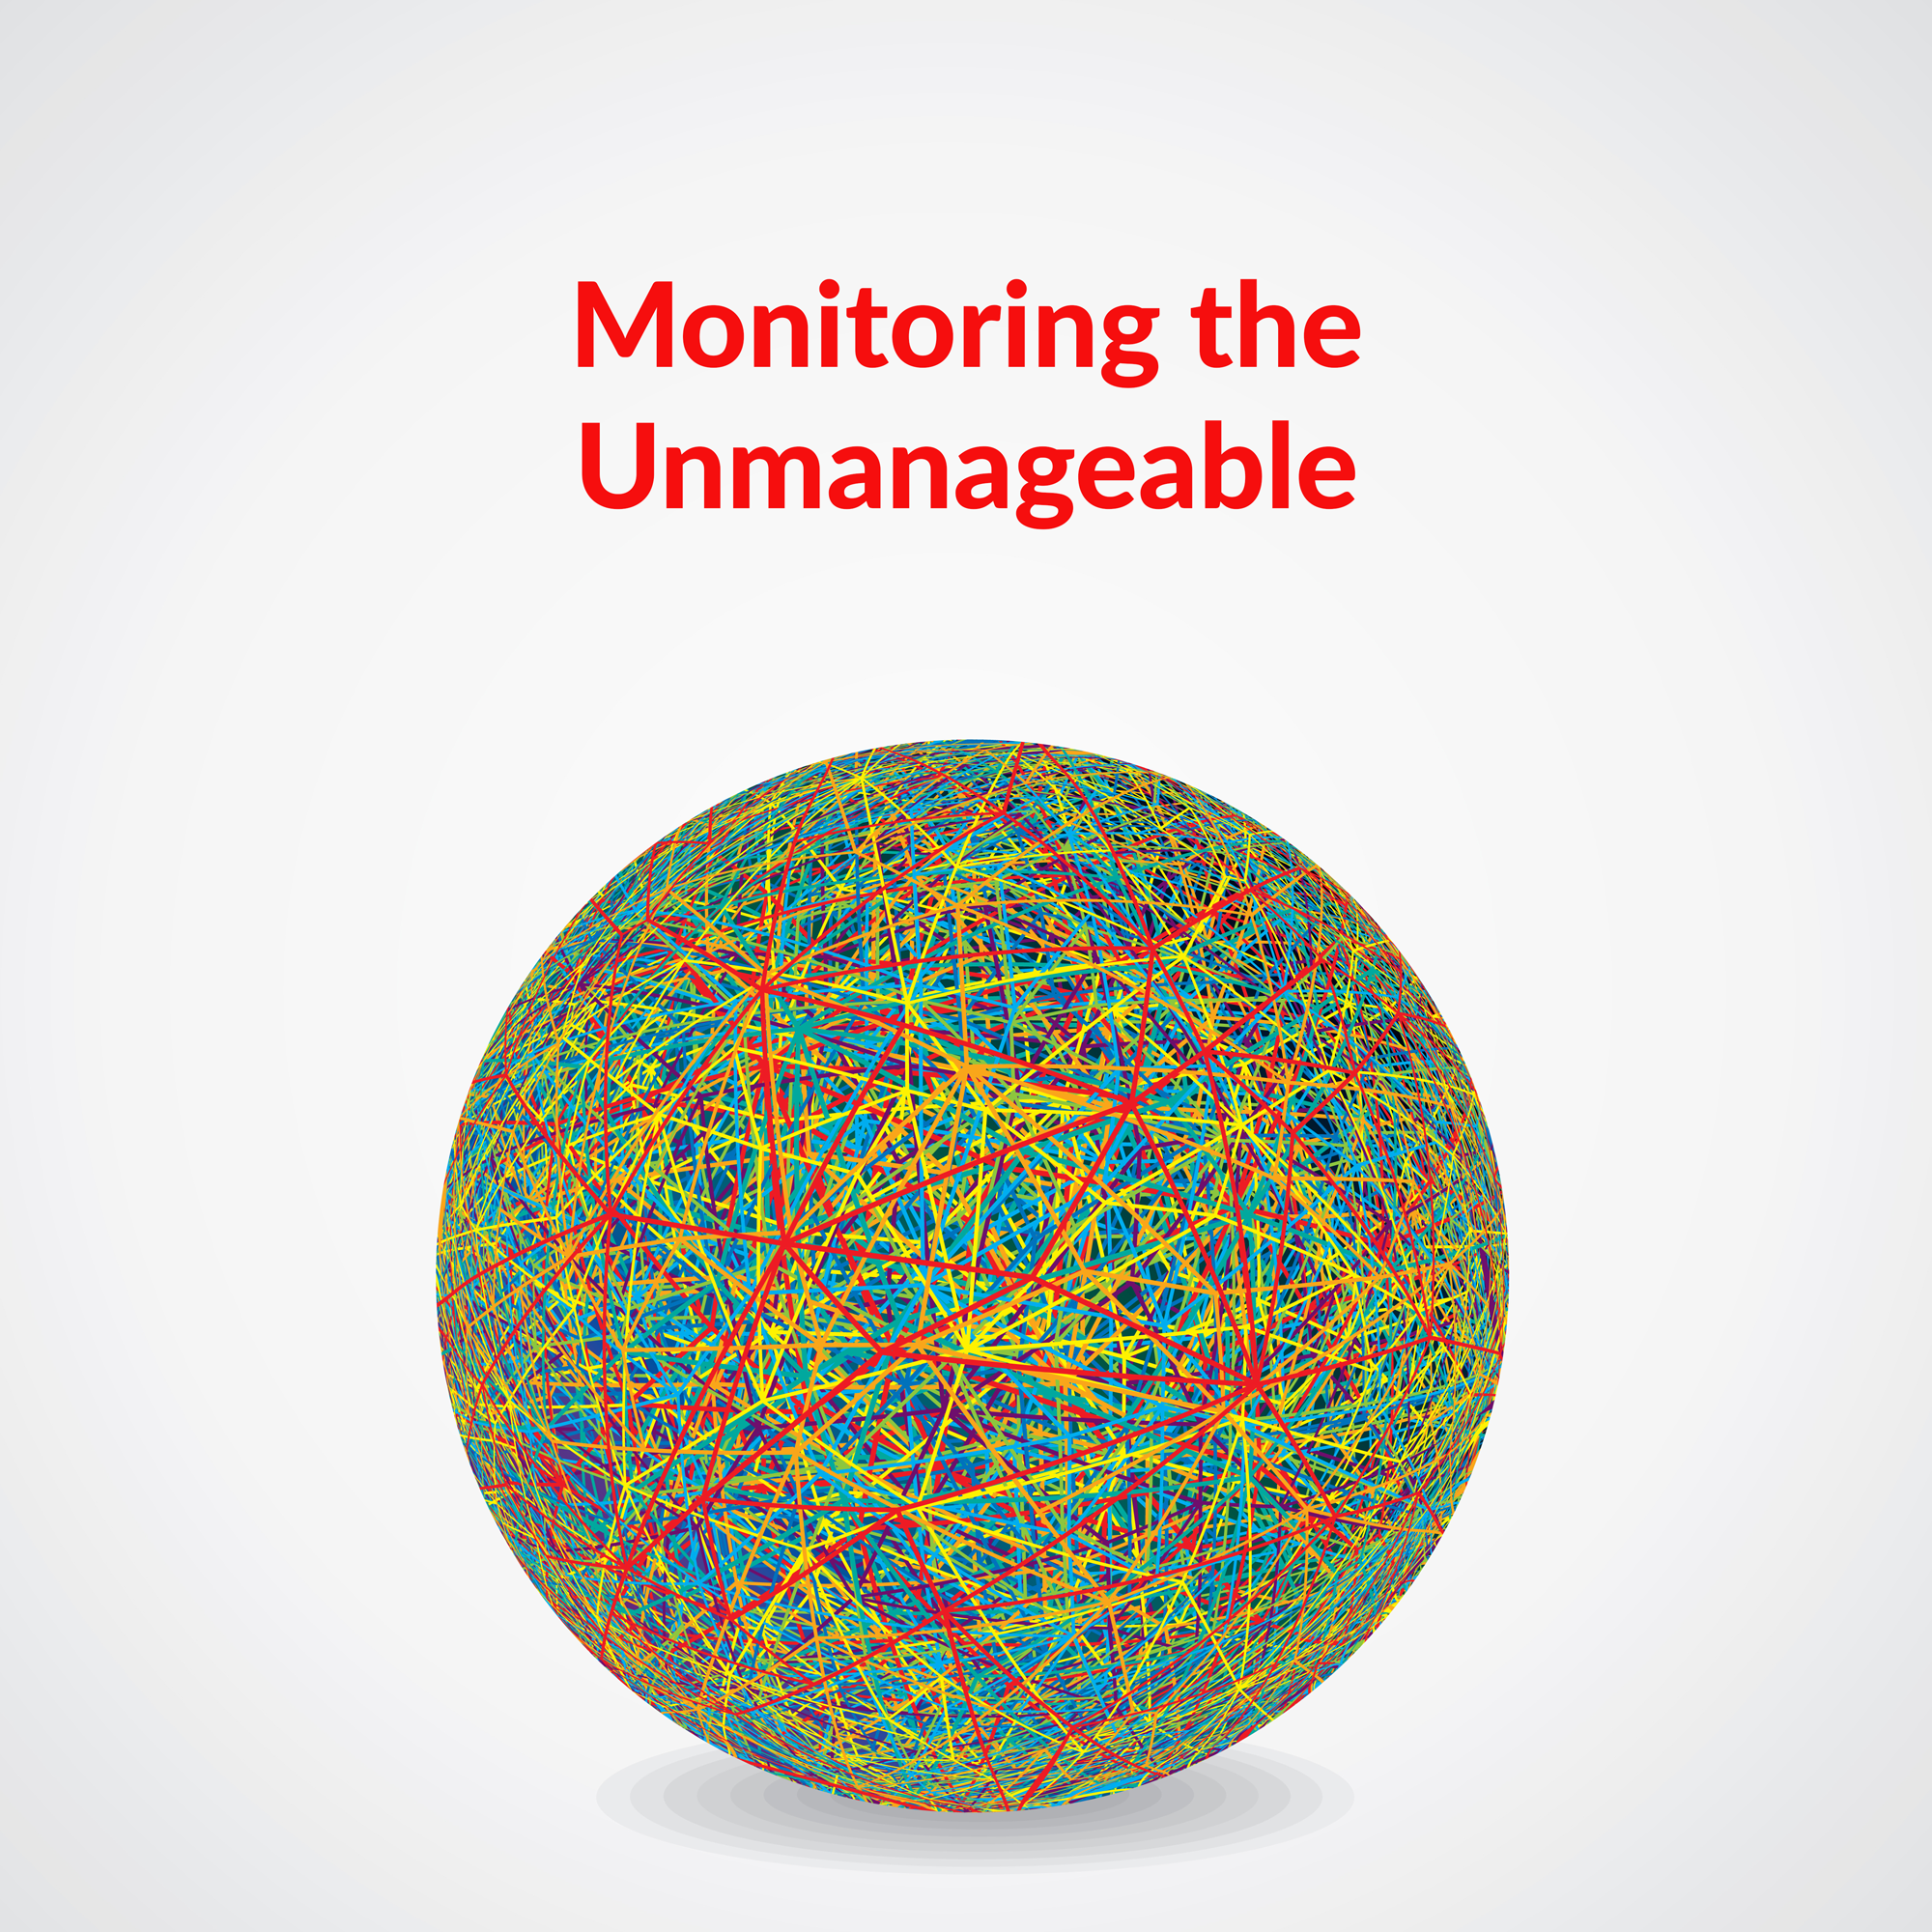 Monitoring-the-Unmanageable-1.png